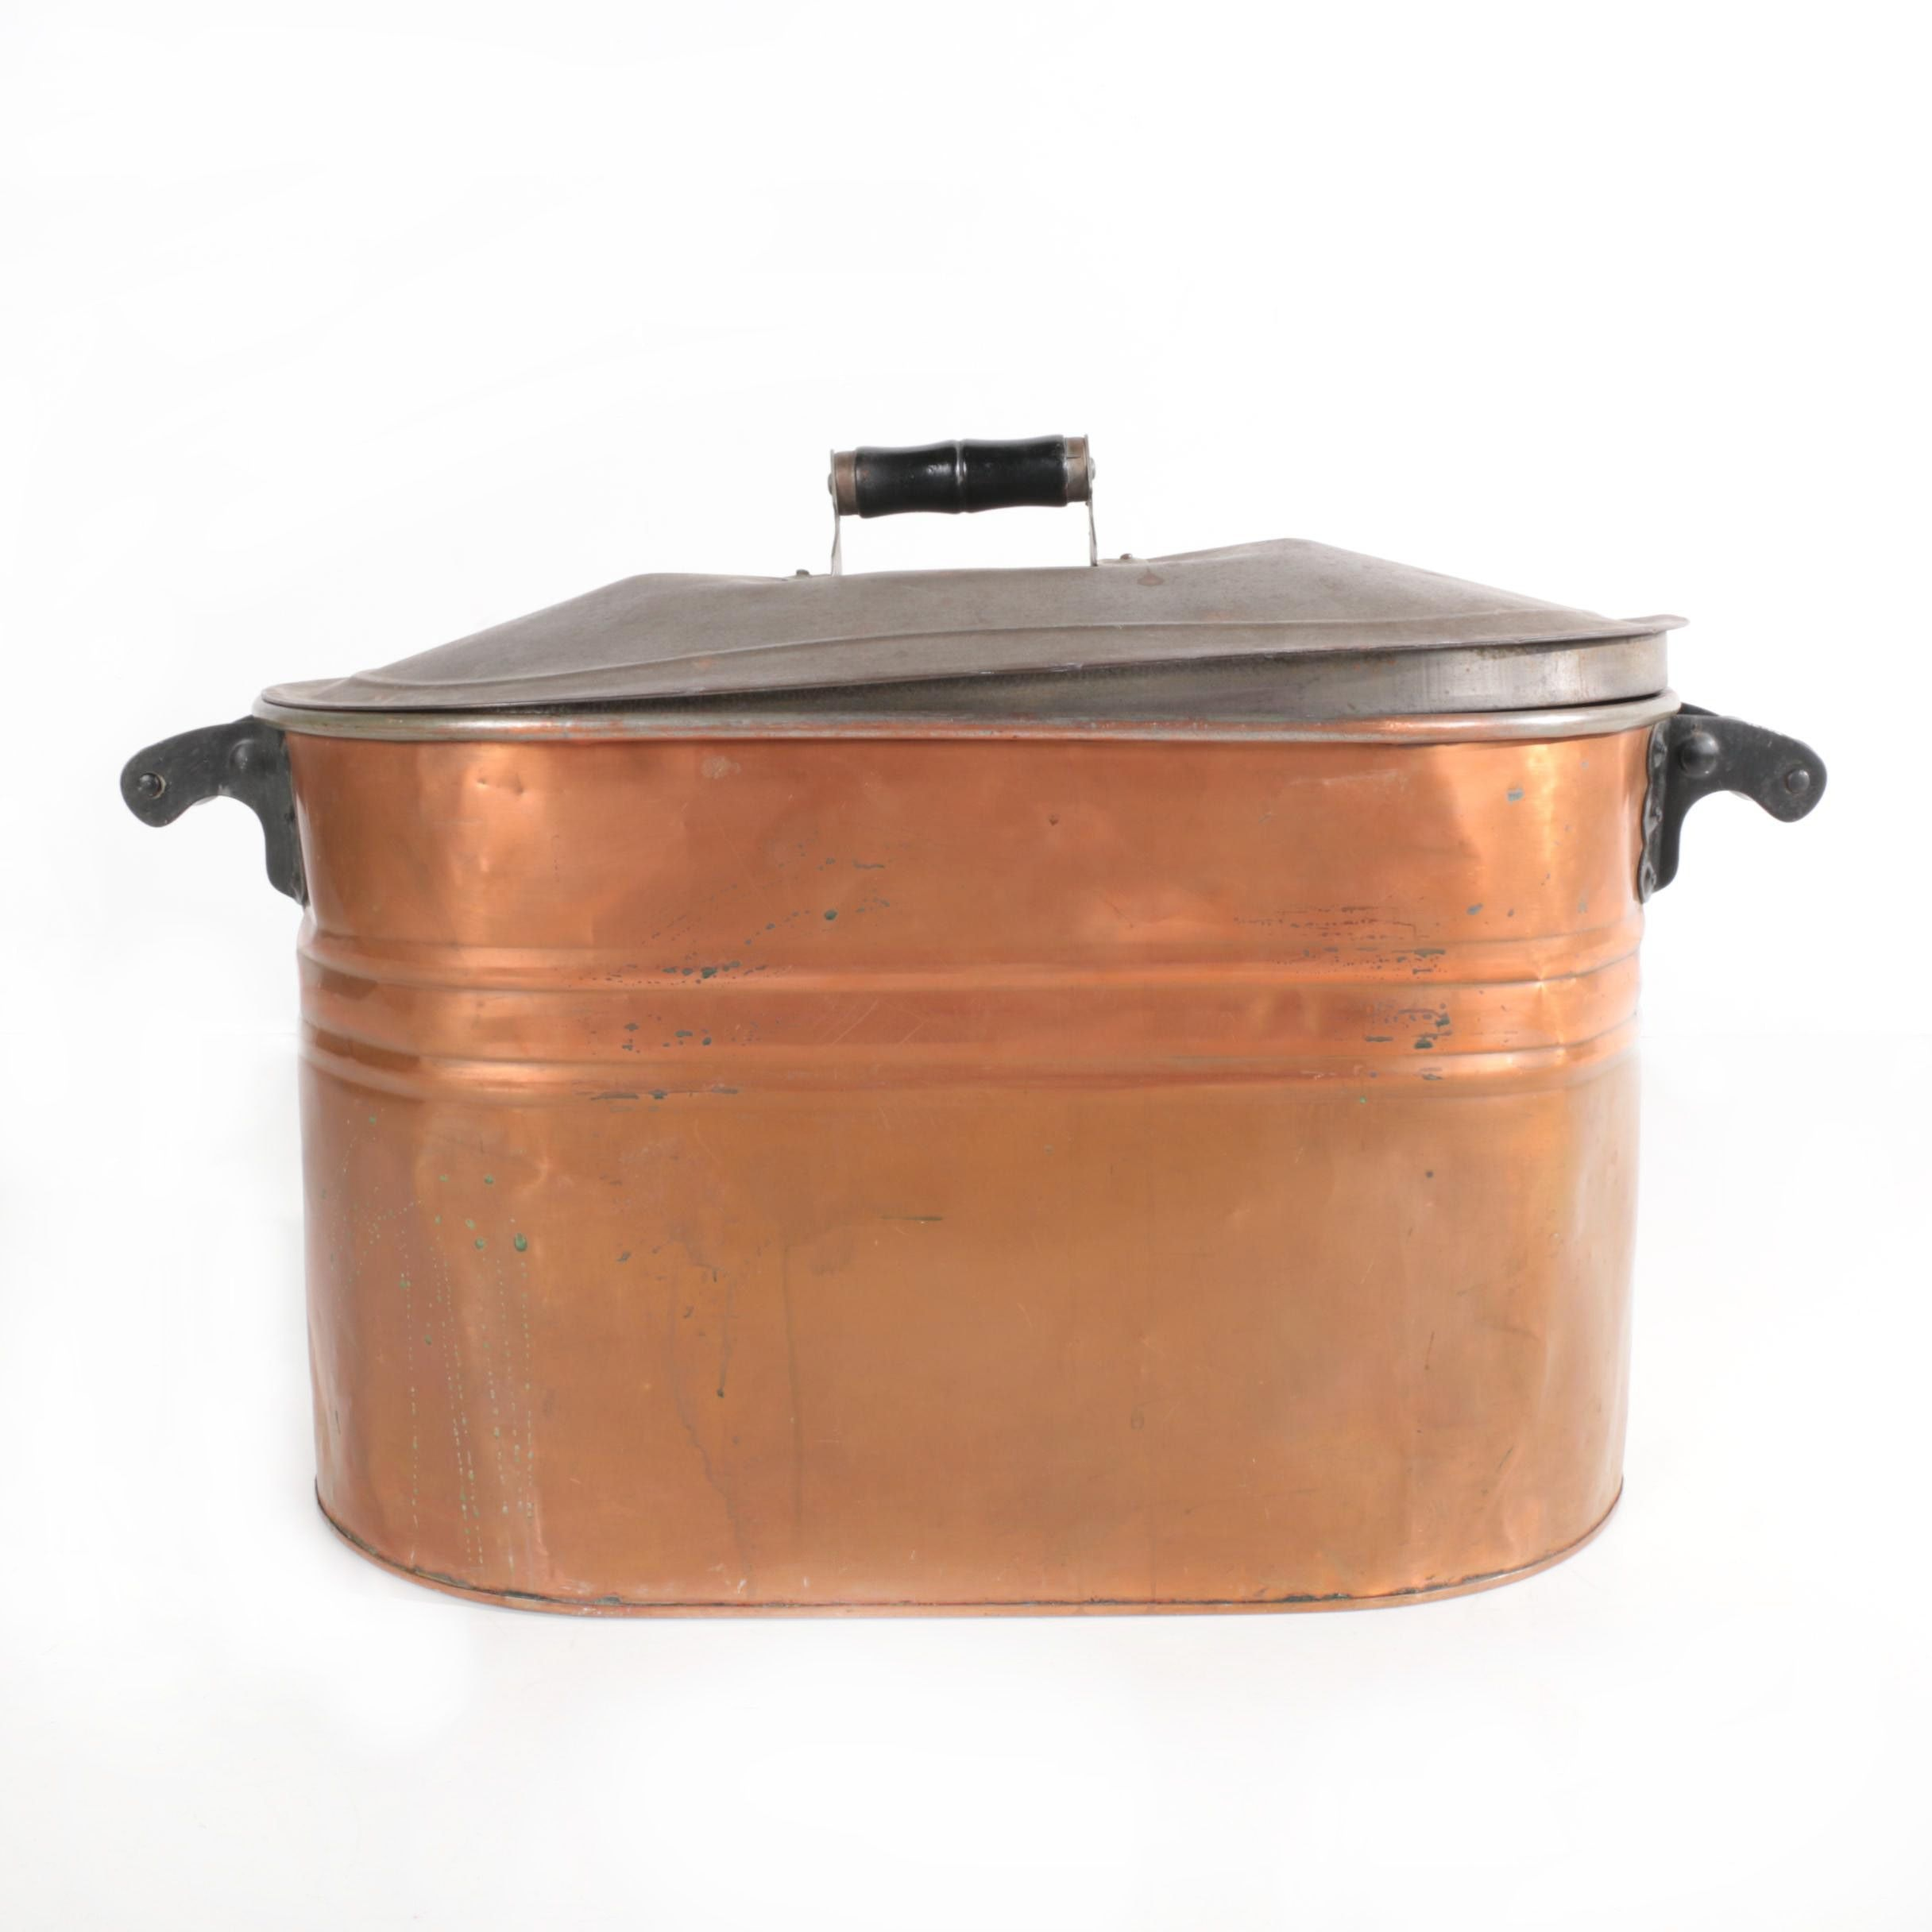 Copper and Tin Boiler Tub